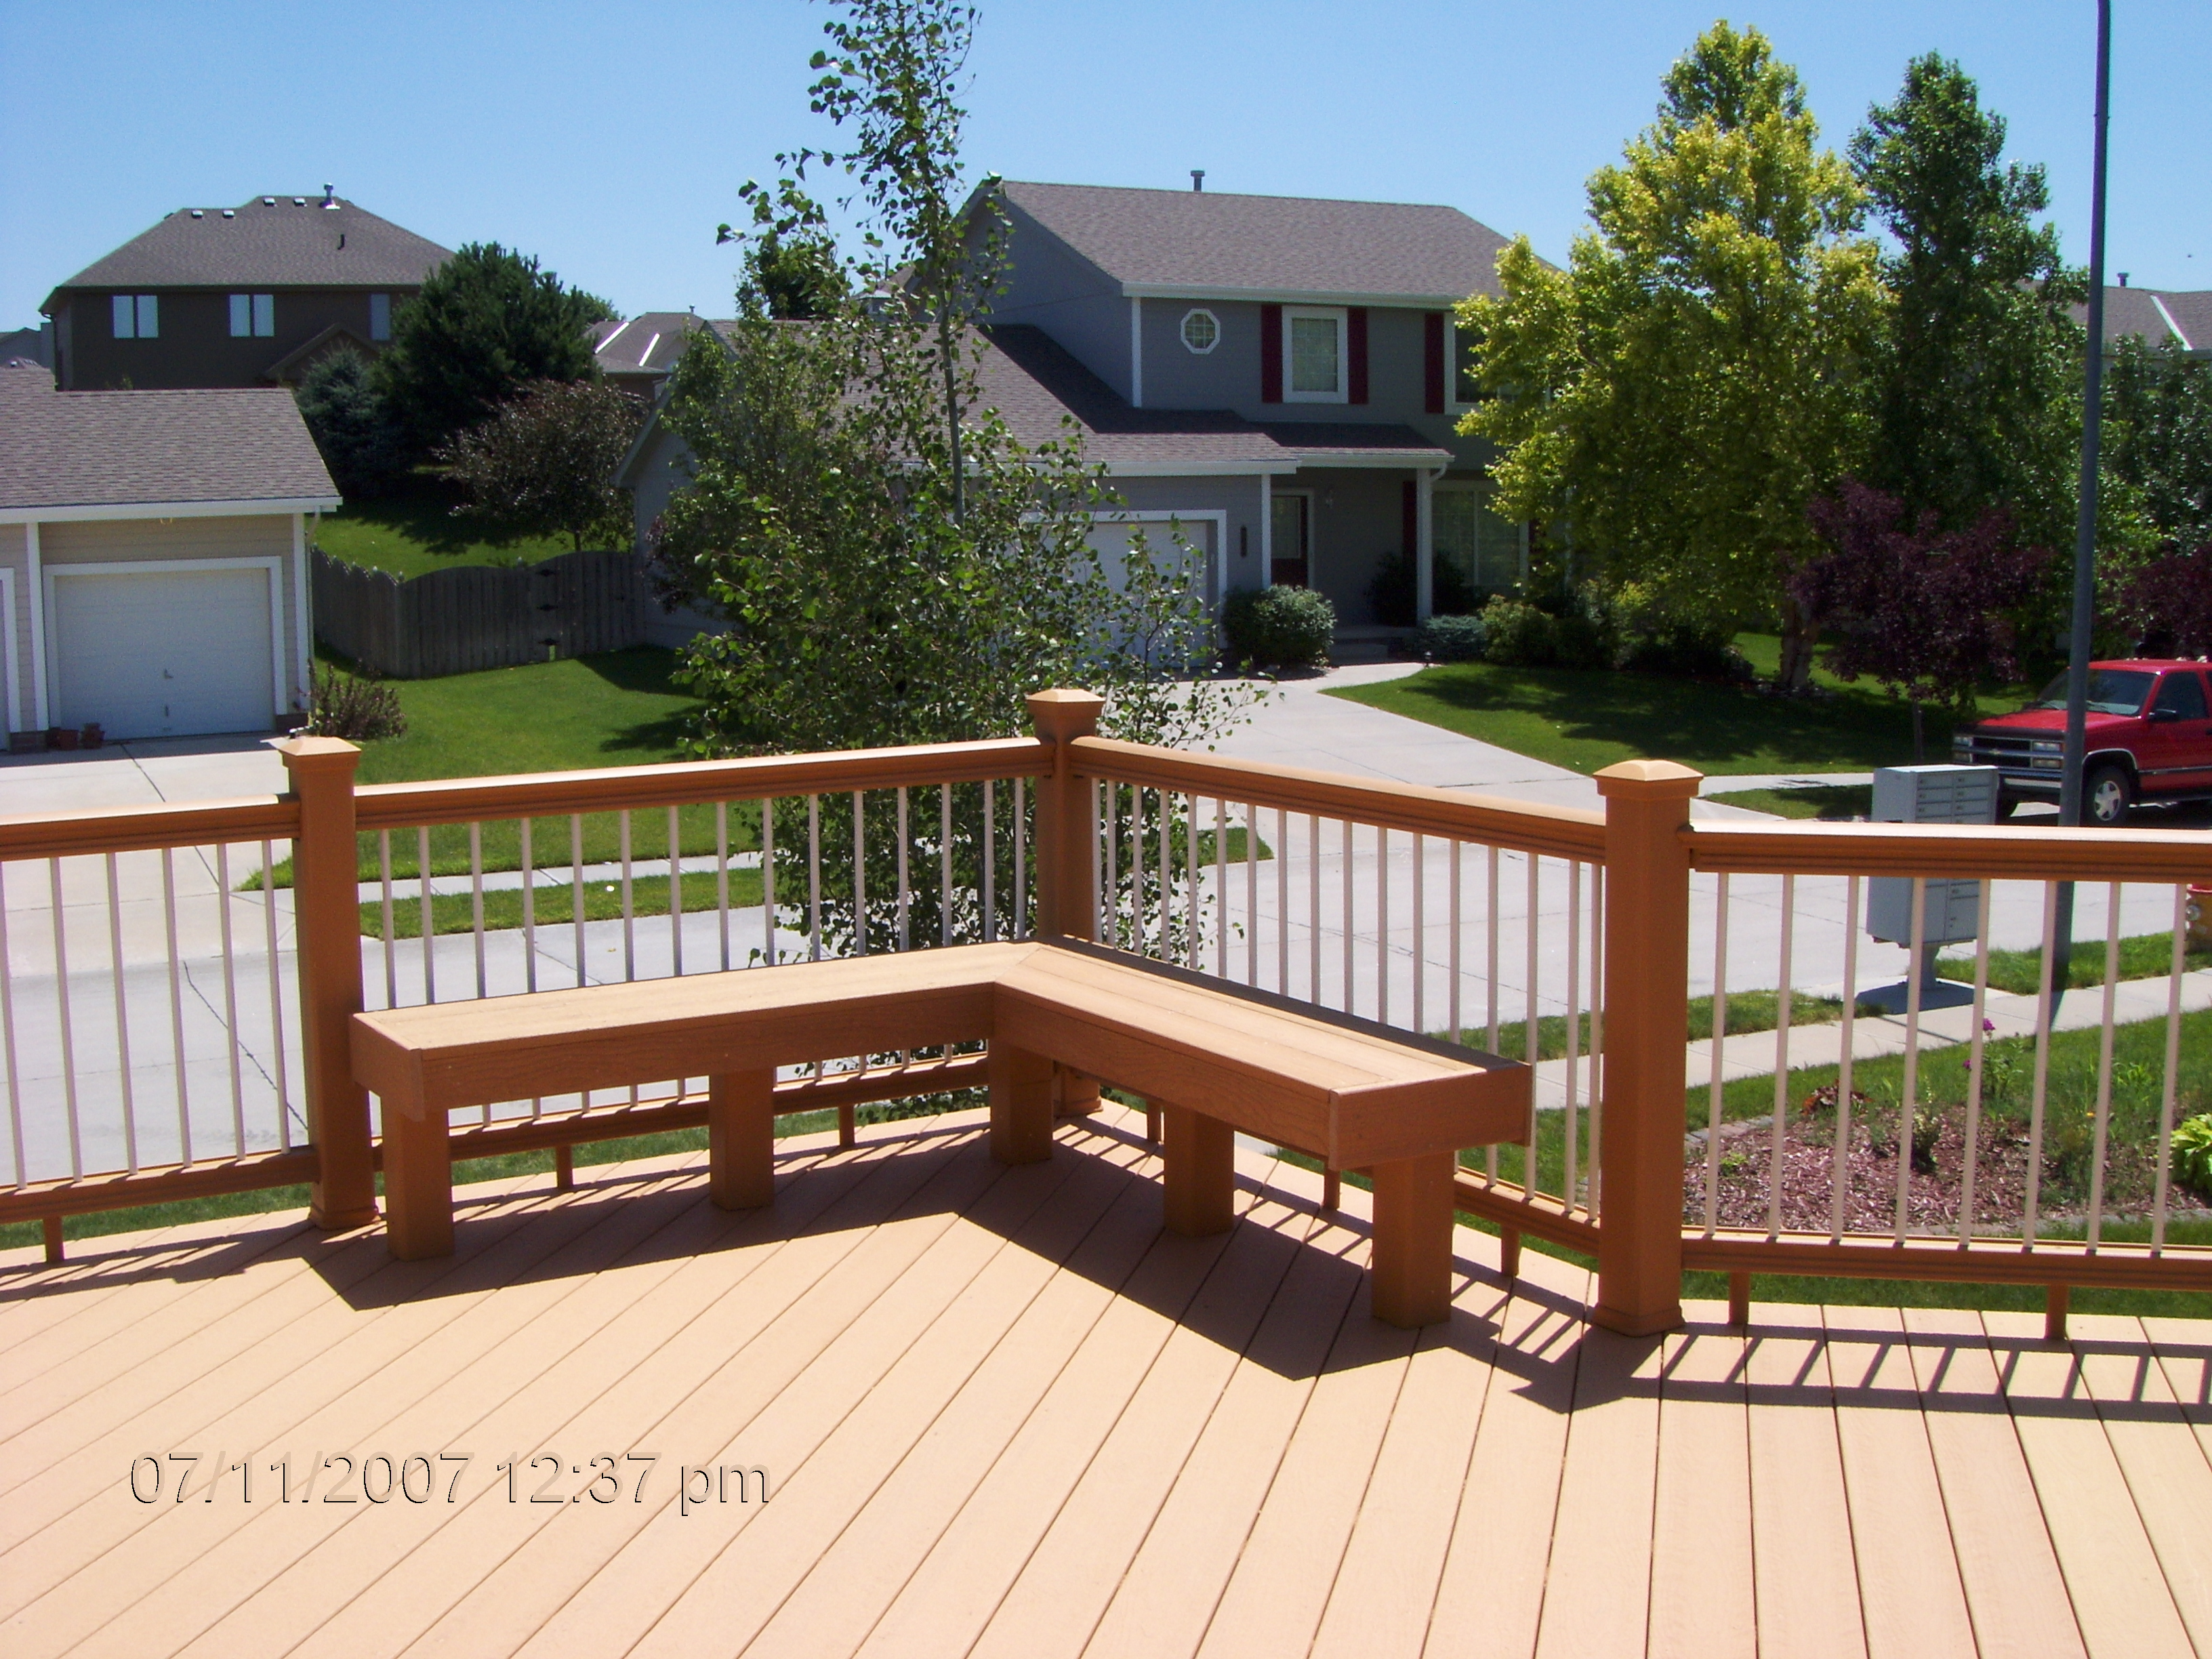 Veranda Composite Decking | Handrails at Home Depot | Fiber Composites Llc